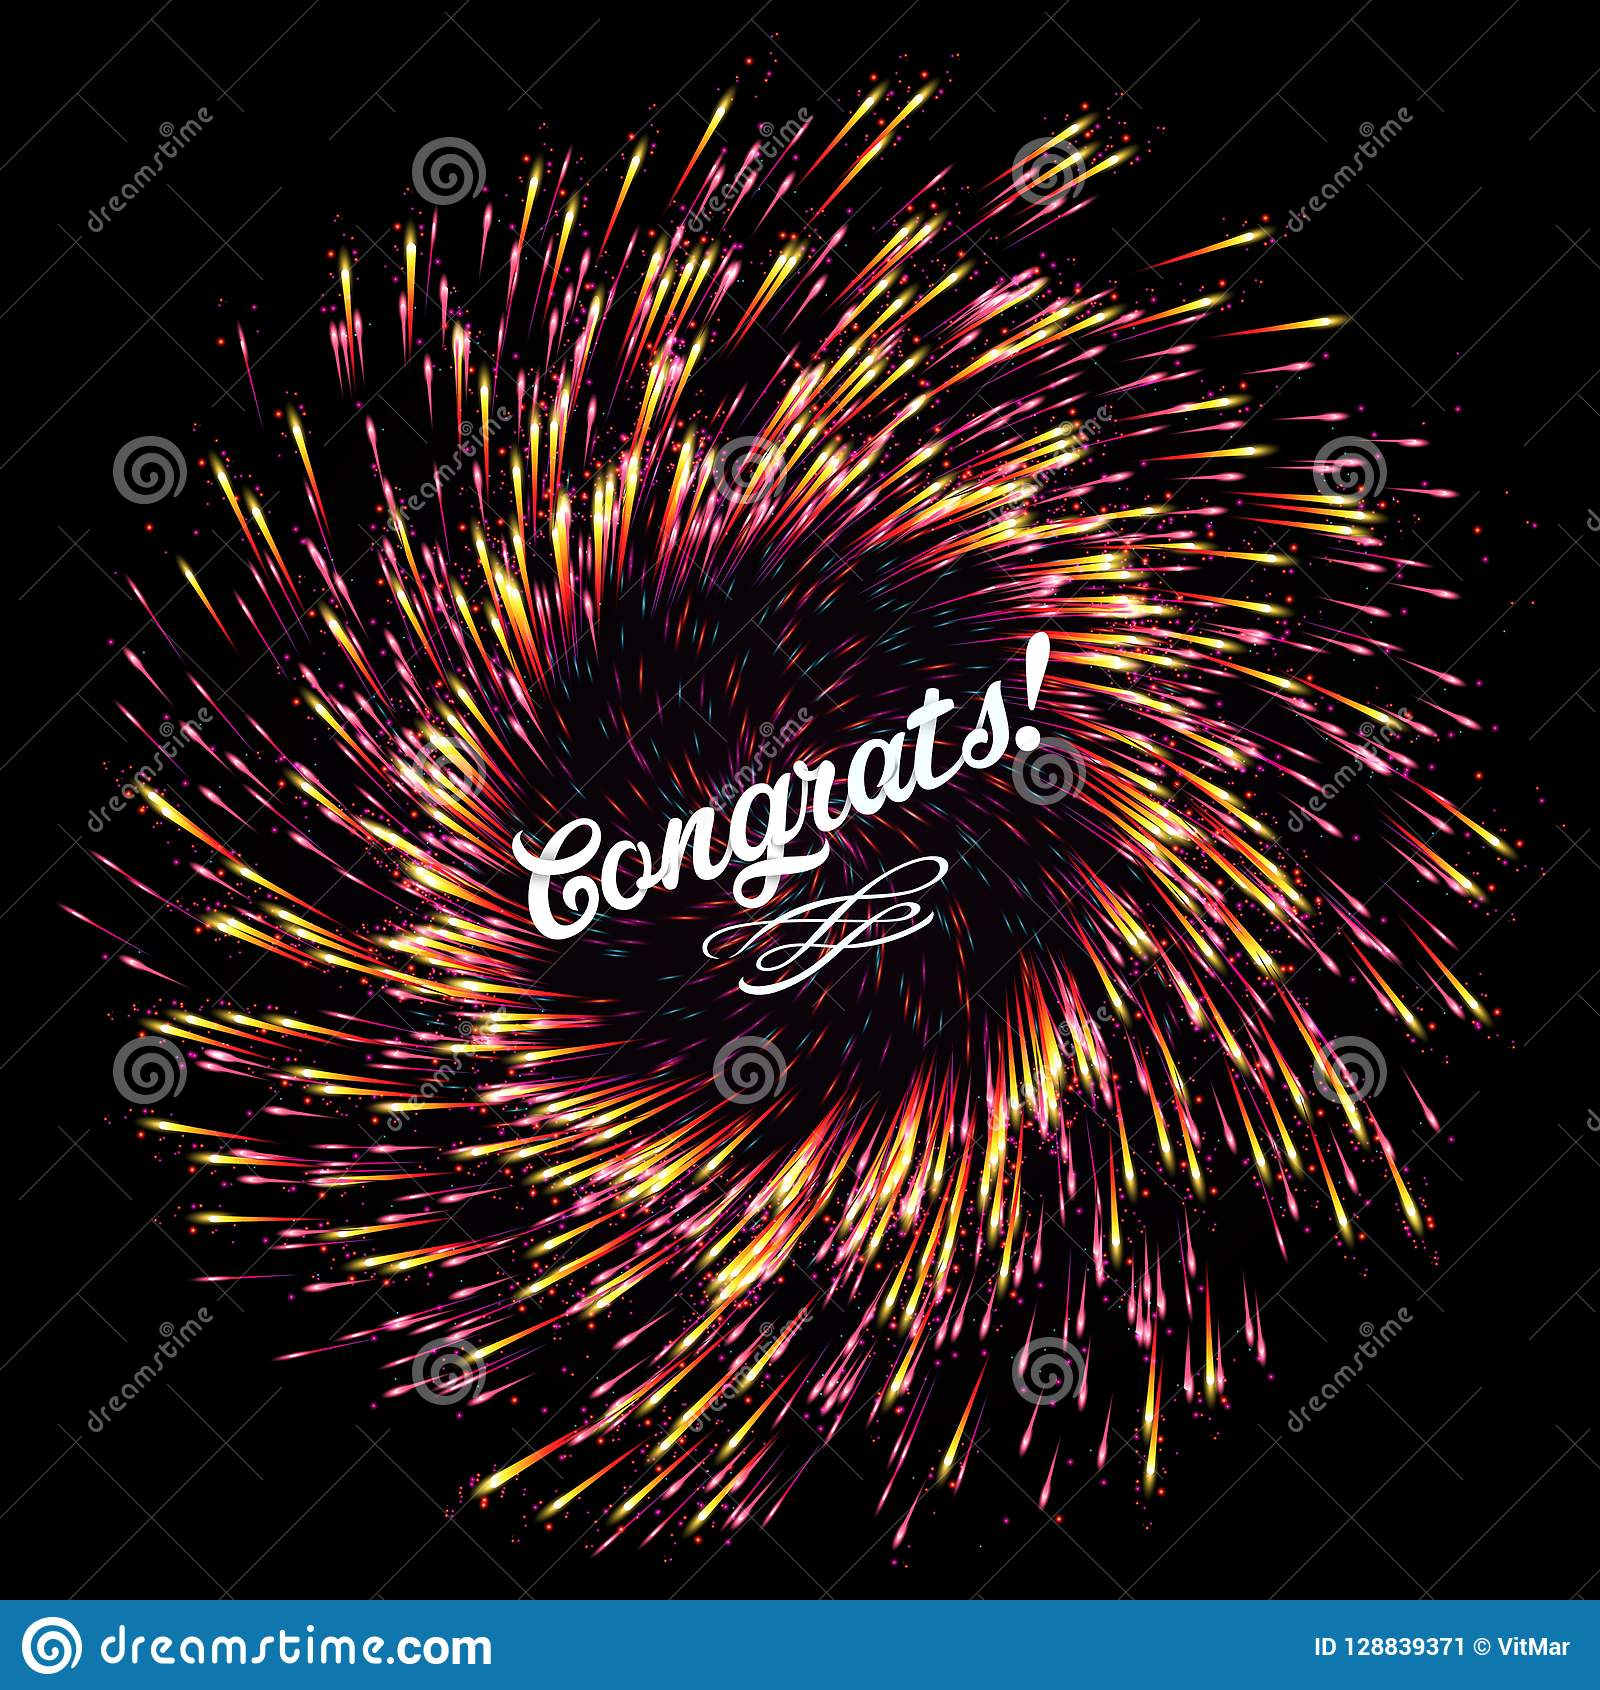 the flash of abstract fireworks on a dark background bright explosion festive lights congratulation